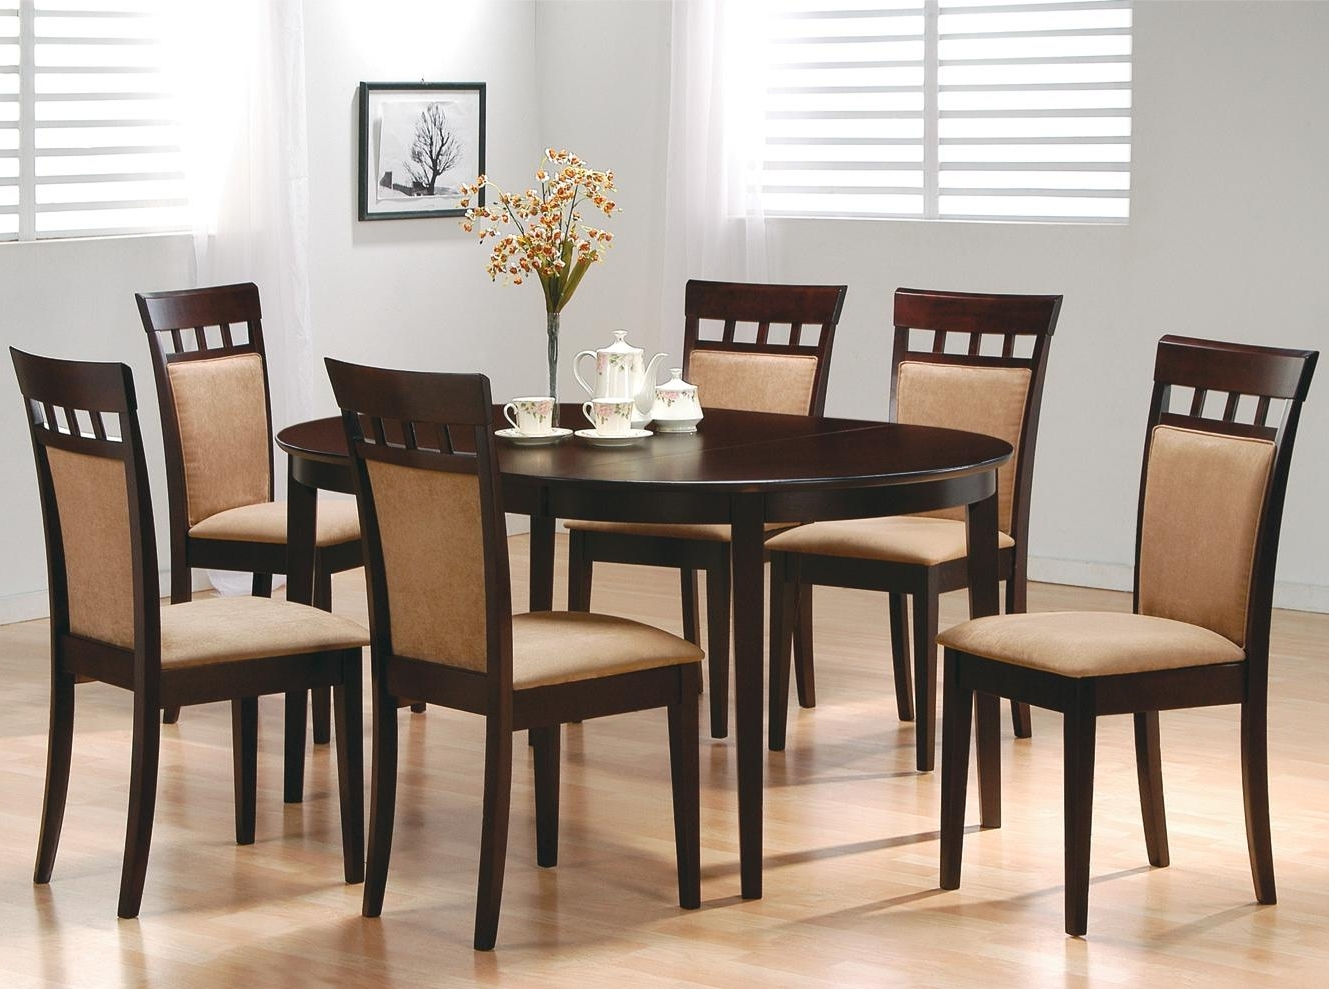 Widely Used Coaster Mix & Match 7 Piece Dining Set (View 3 of 25)